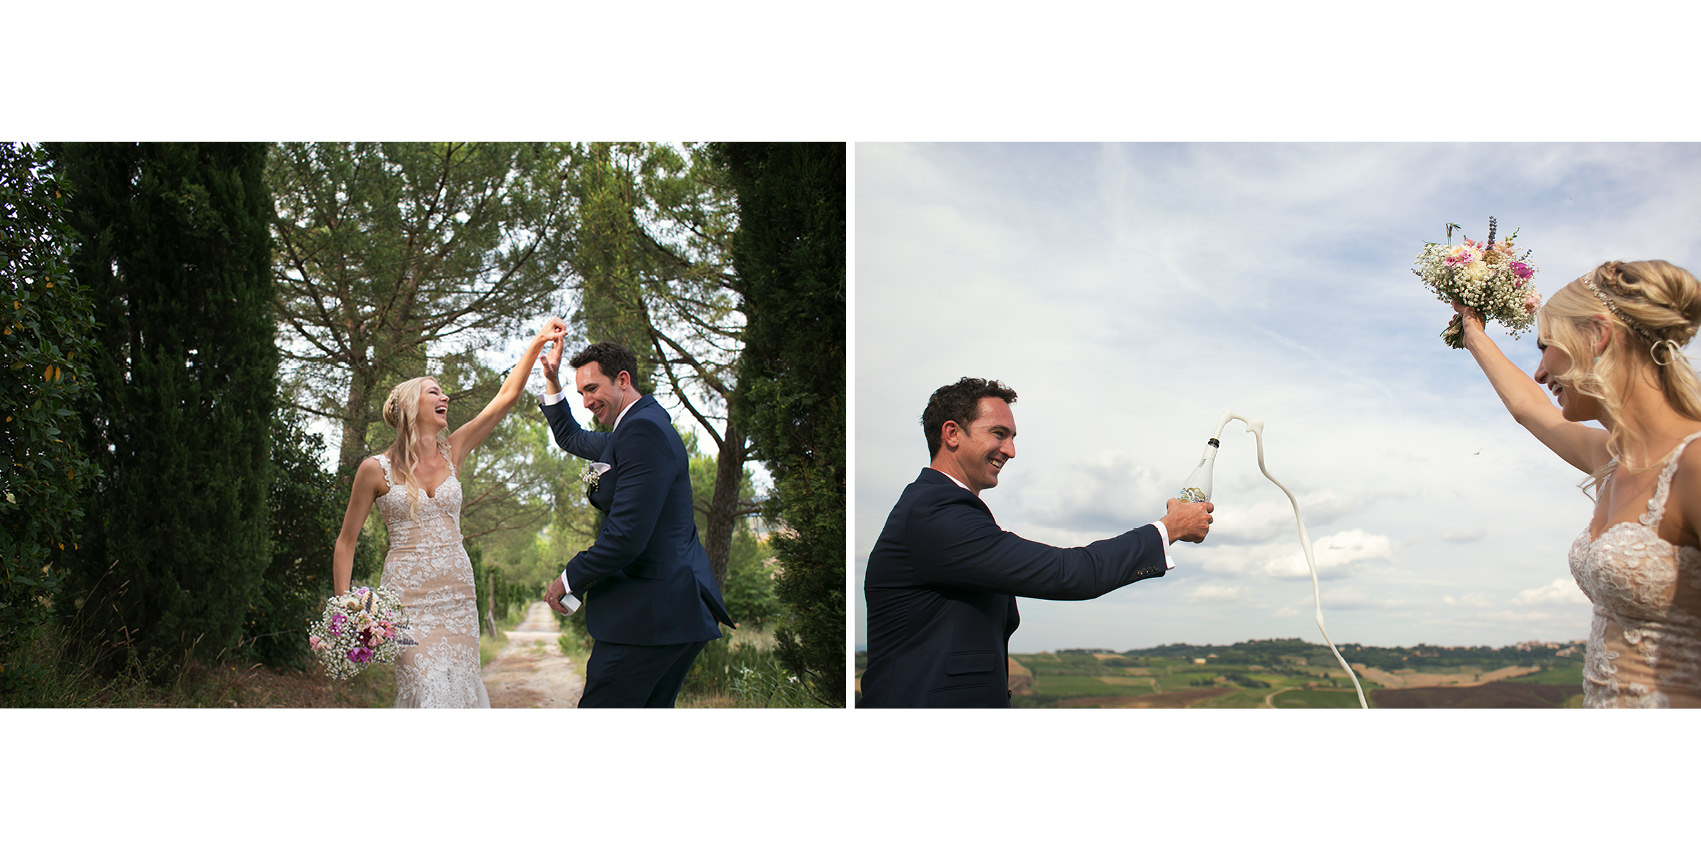 romantic elopement in tuscany hills